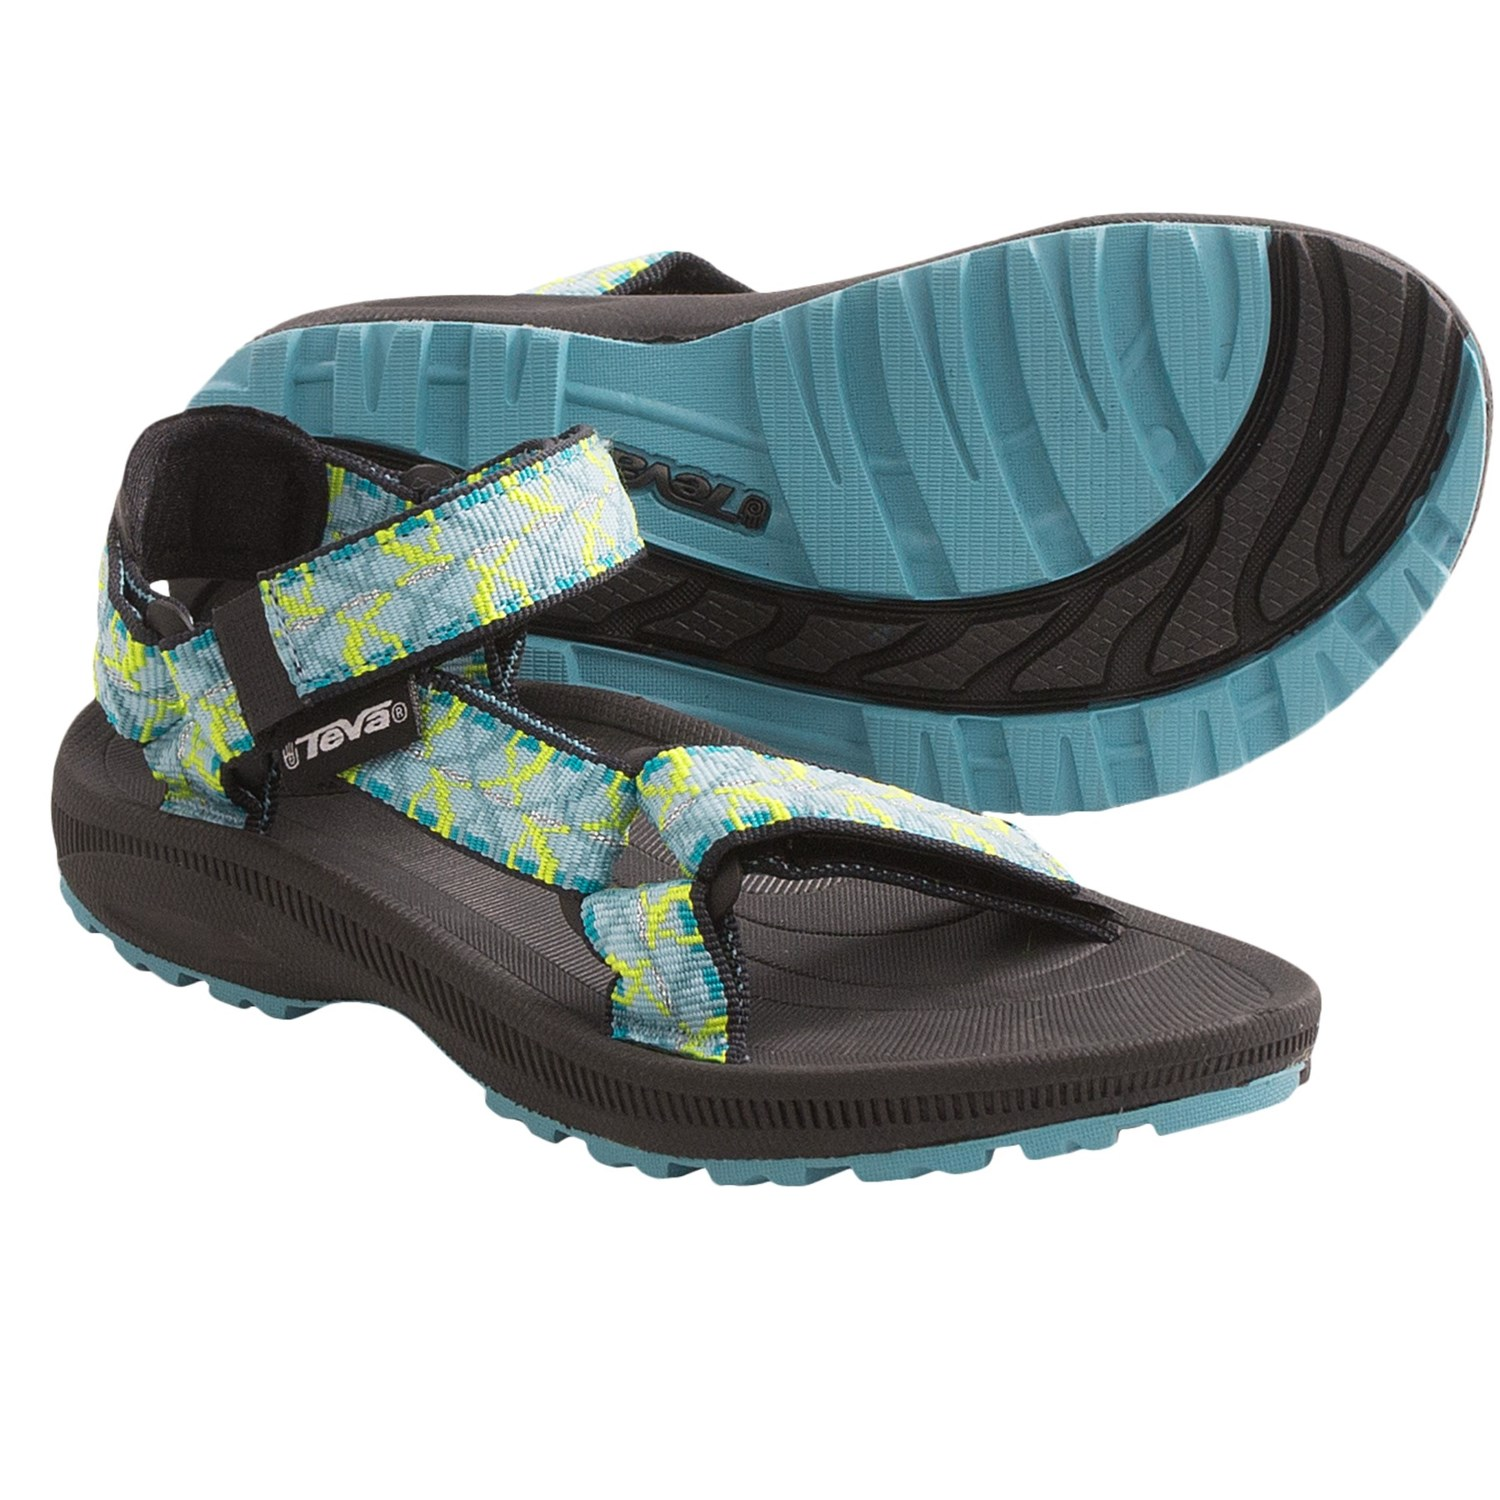 Teva Sandals For Youth Outdoor Sandals